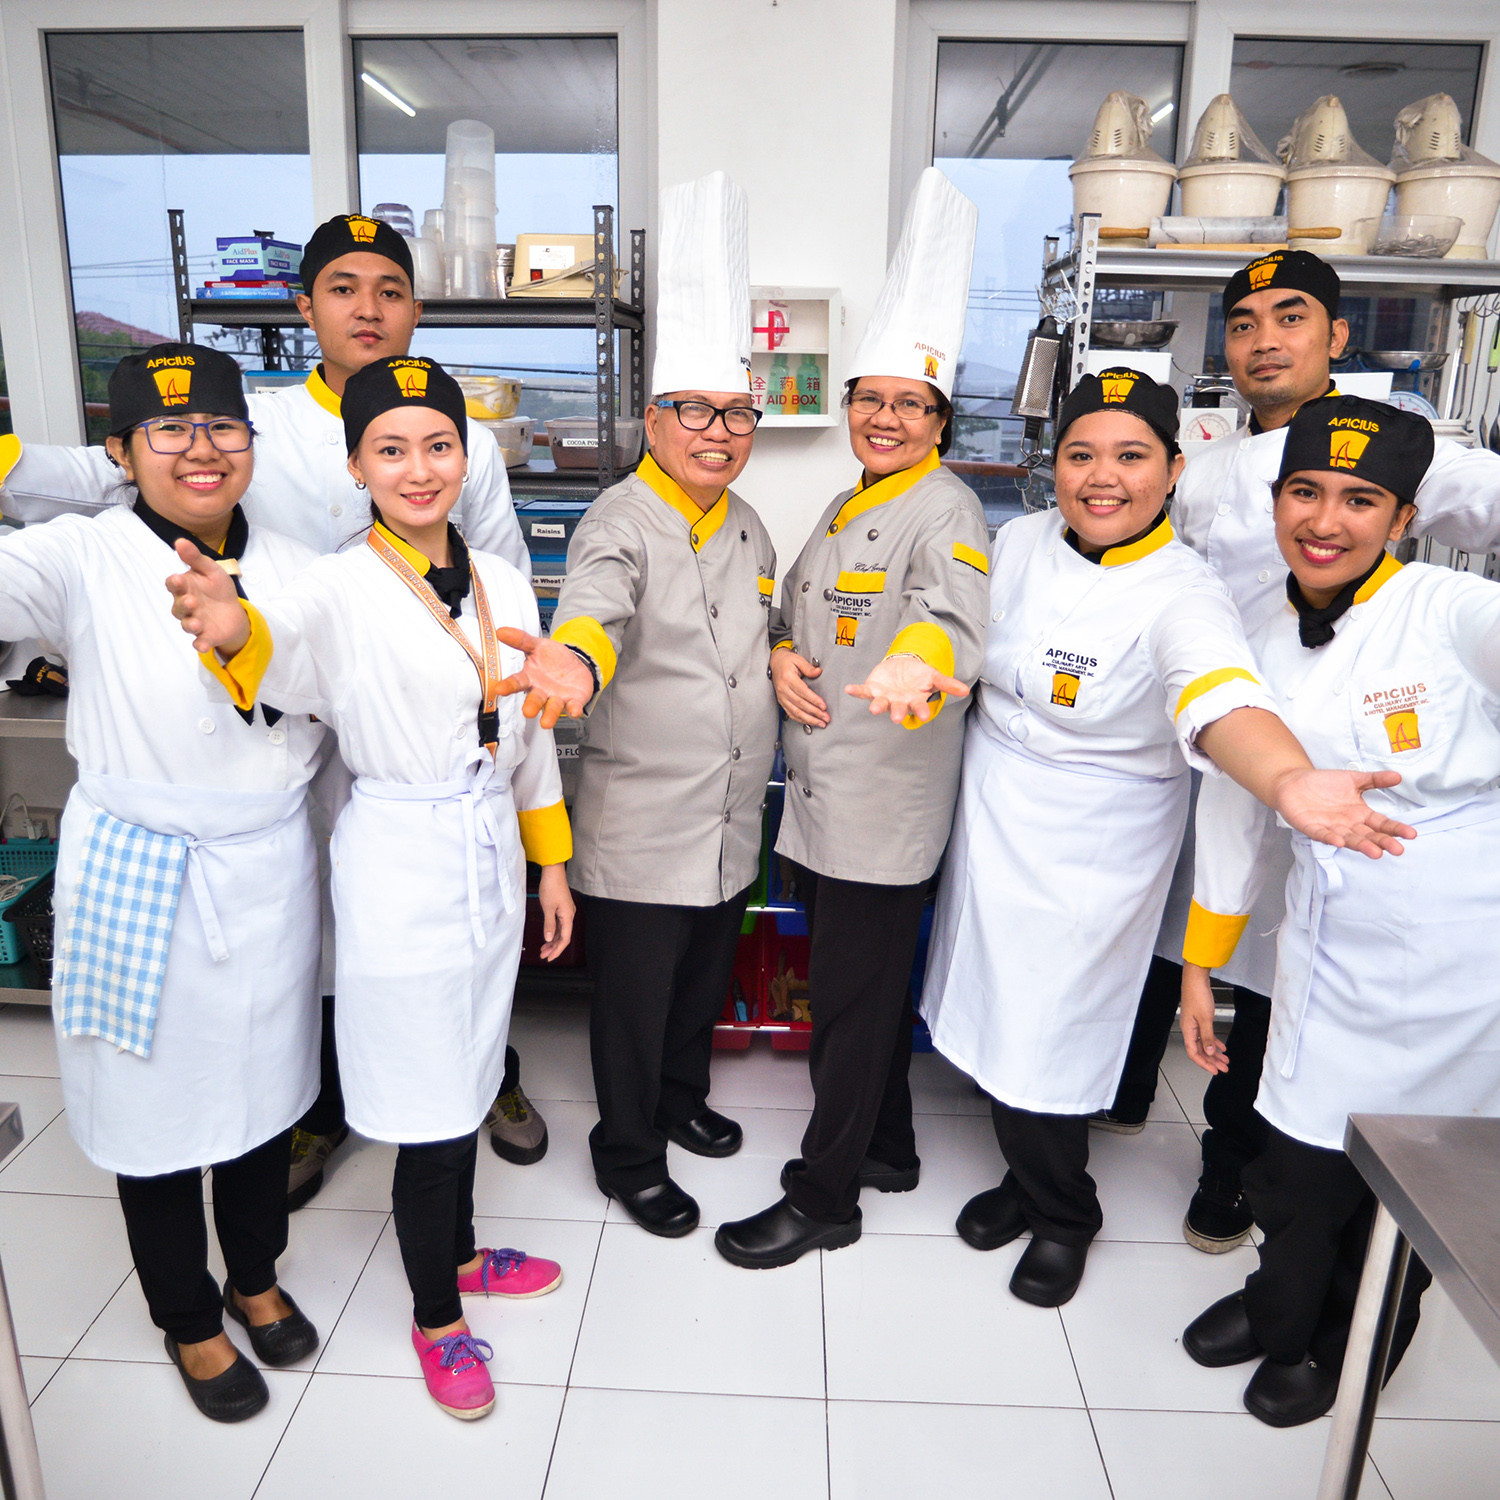 Diploma in Culinary Arts, Pastry and Baking